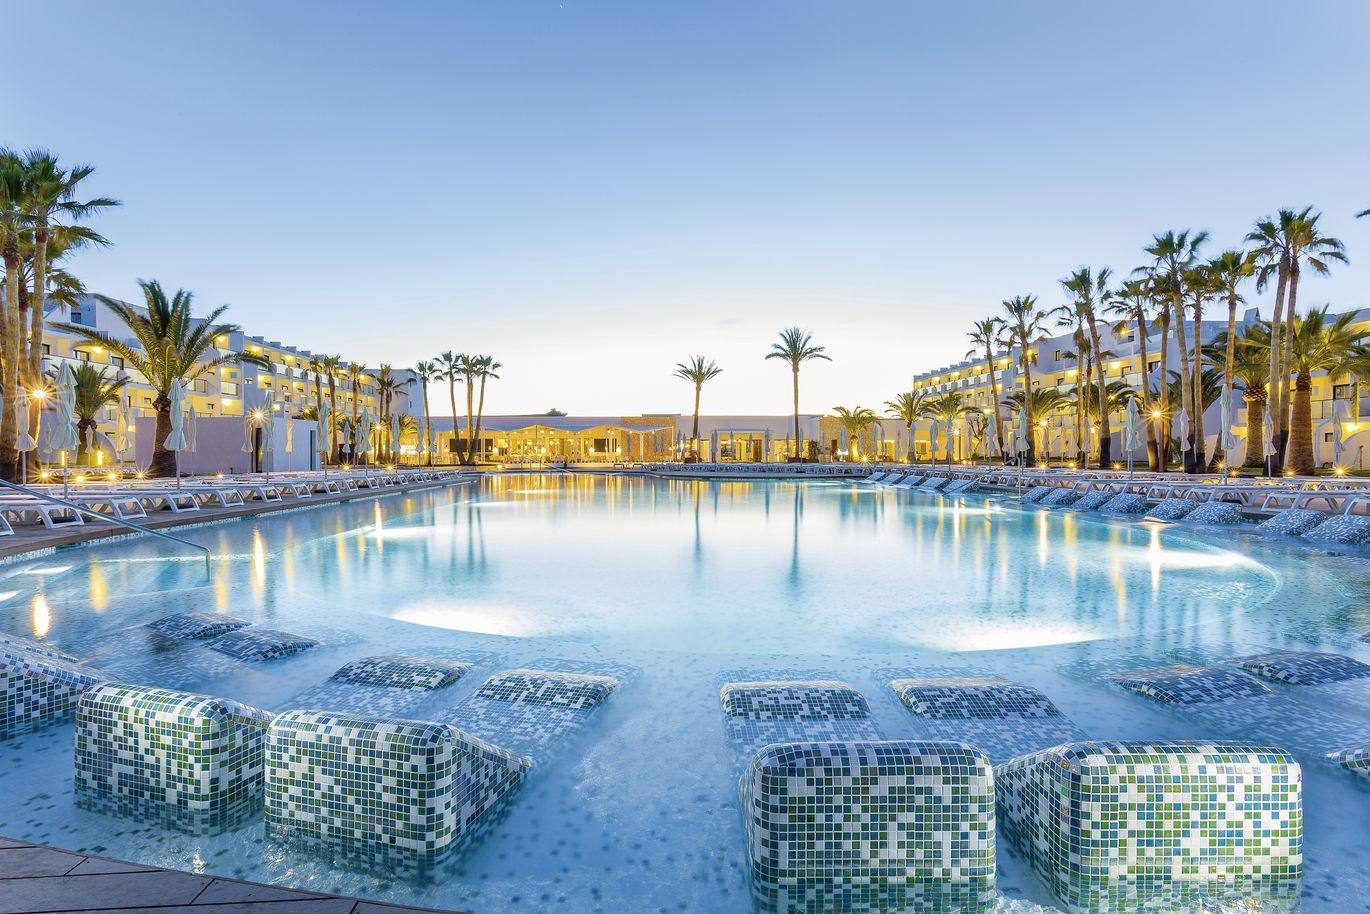 Hôtel Grand Palladium White Island Resort et Spa 5* pas cher photo 1